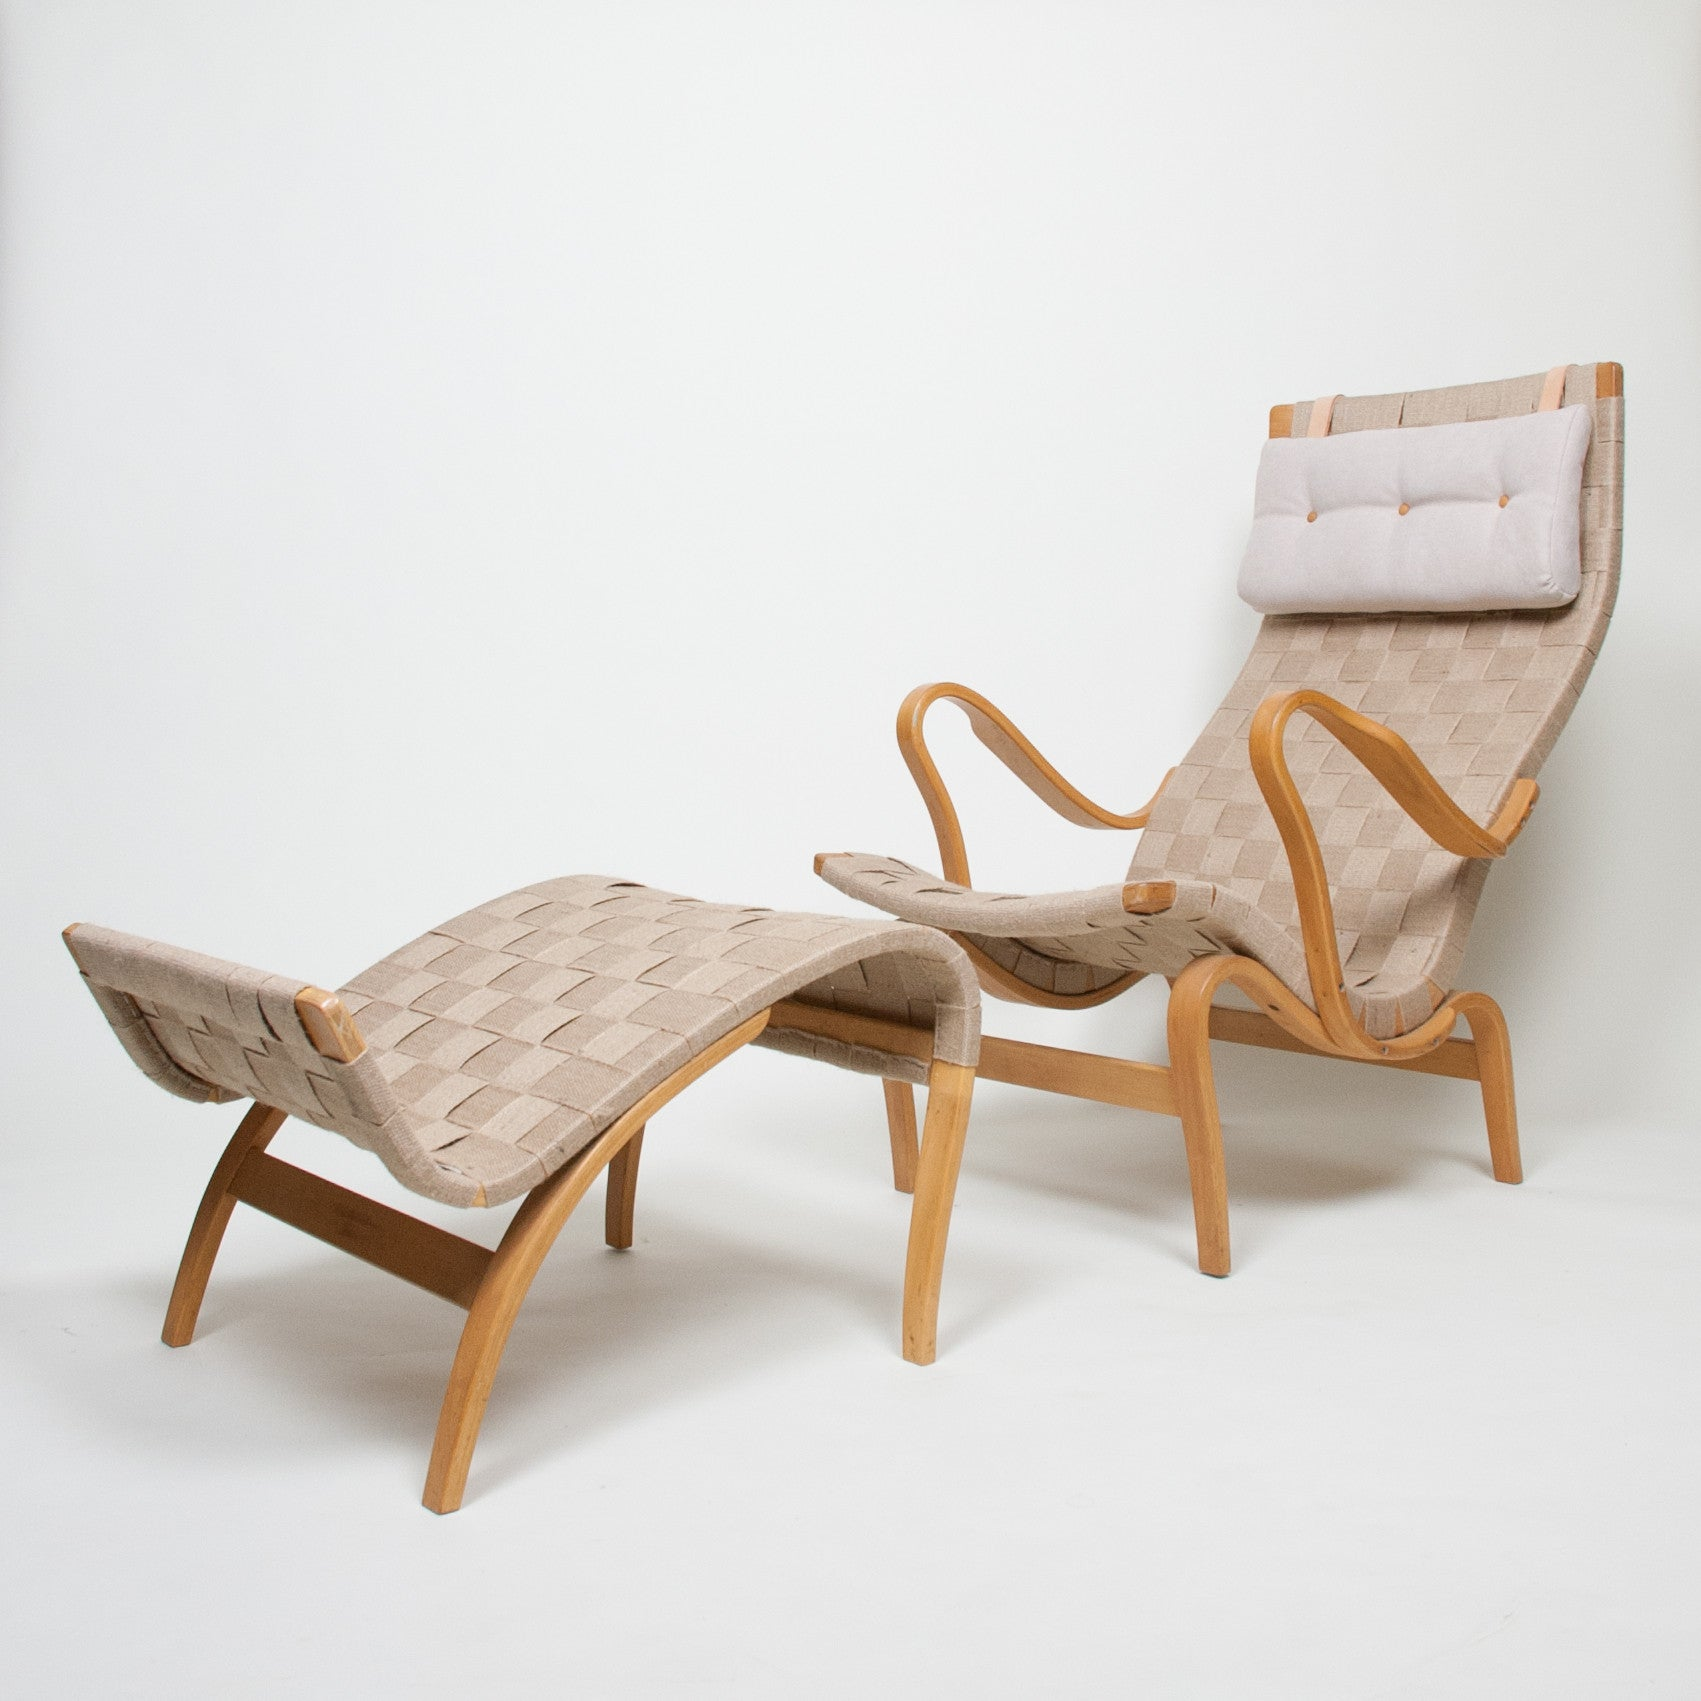 SOLD Bruno Mathsson Pernilla Lounge Chair + Ottoman Set Karl Mathsson Sweden